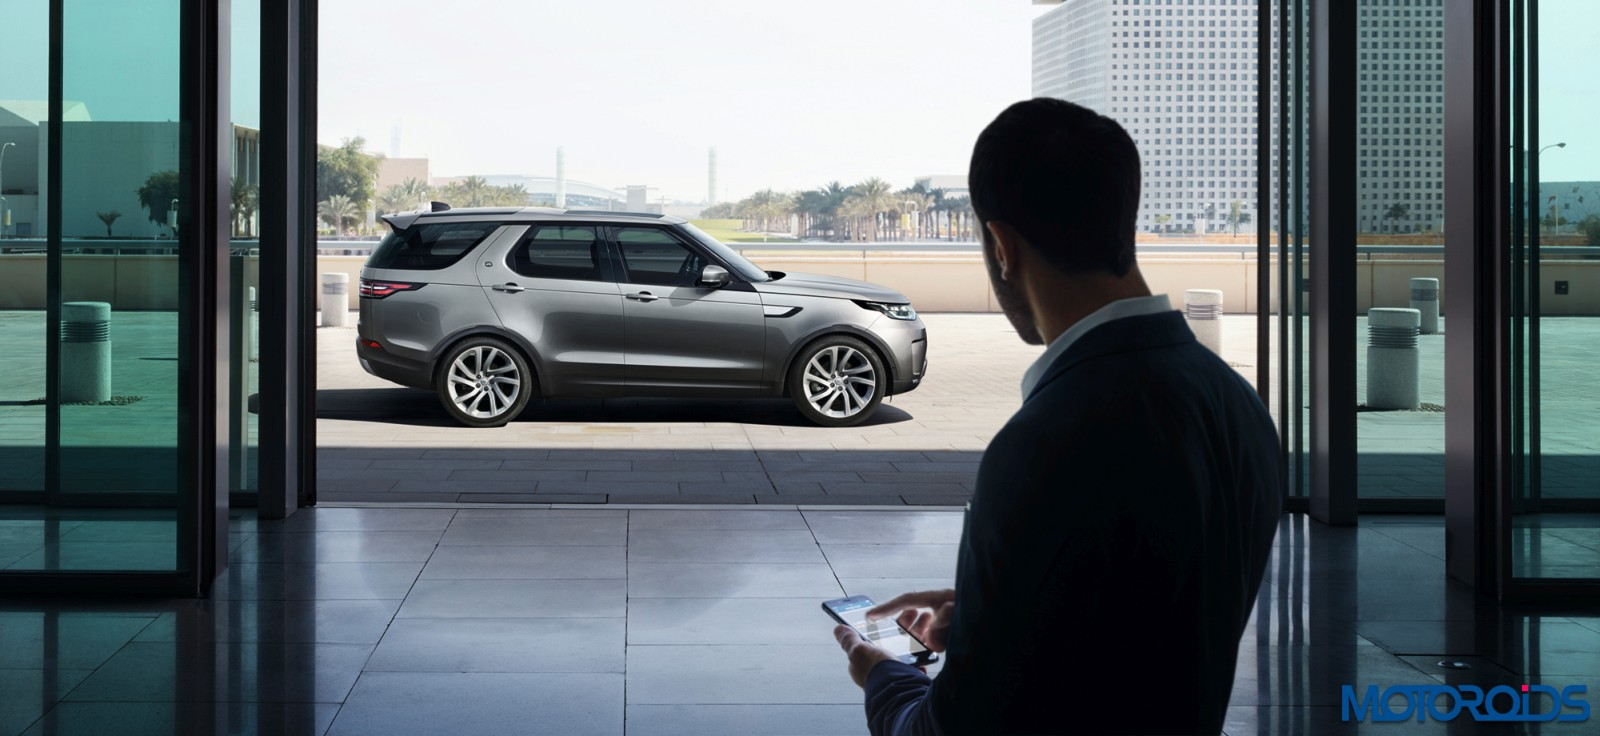 new-2017-land-rover-discovery-105